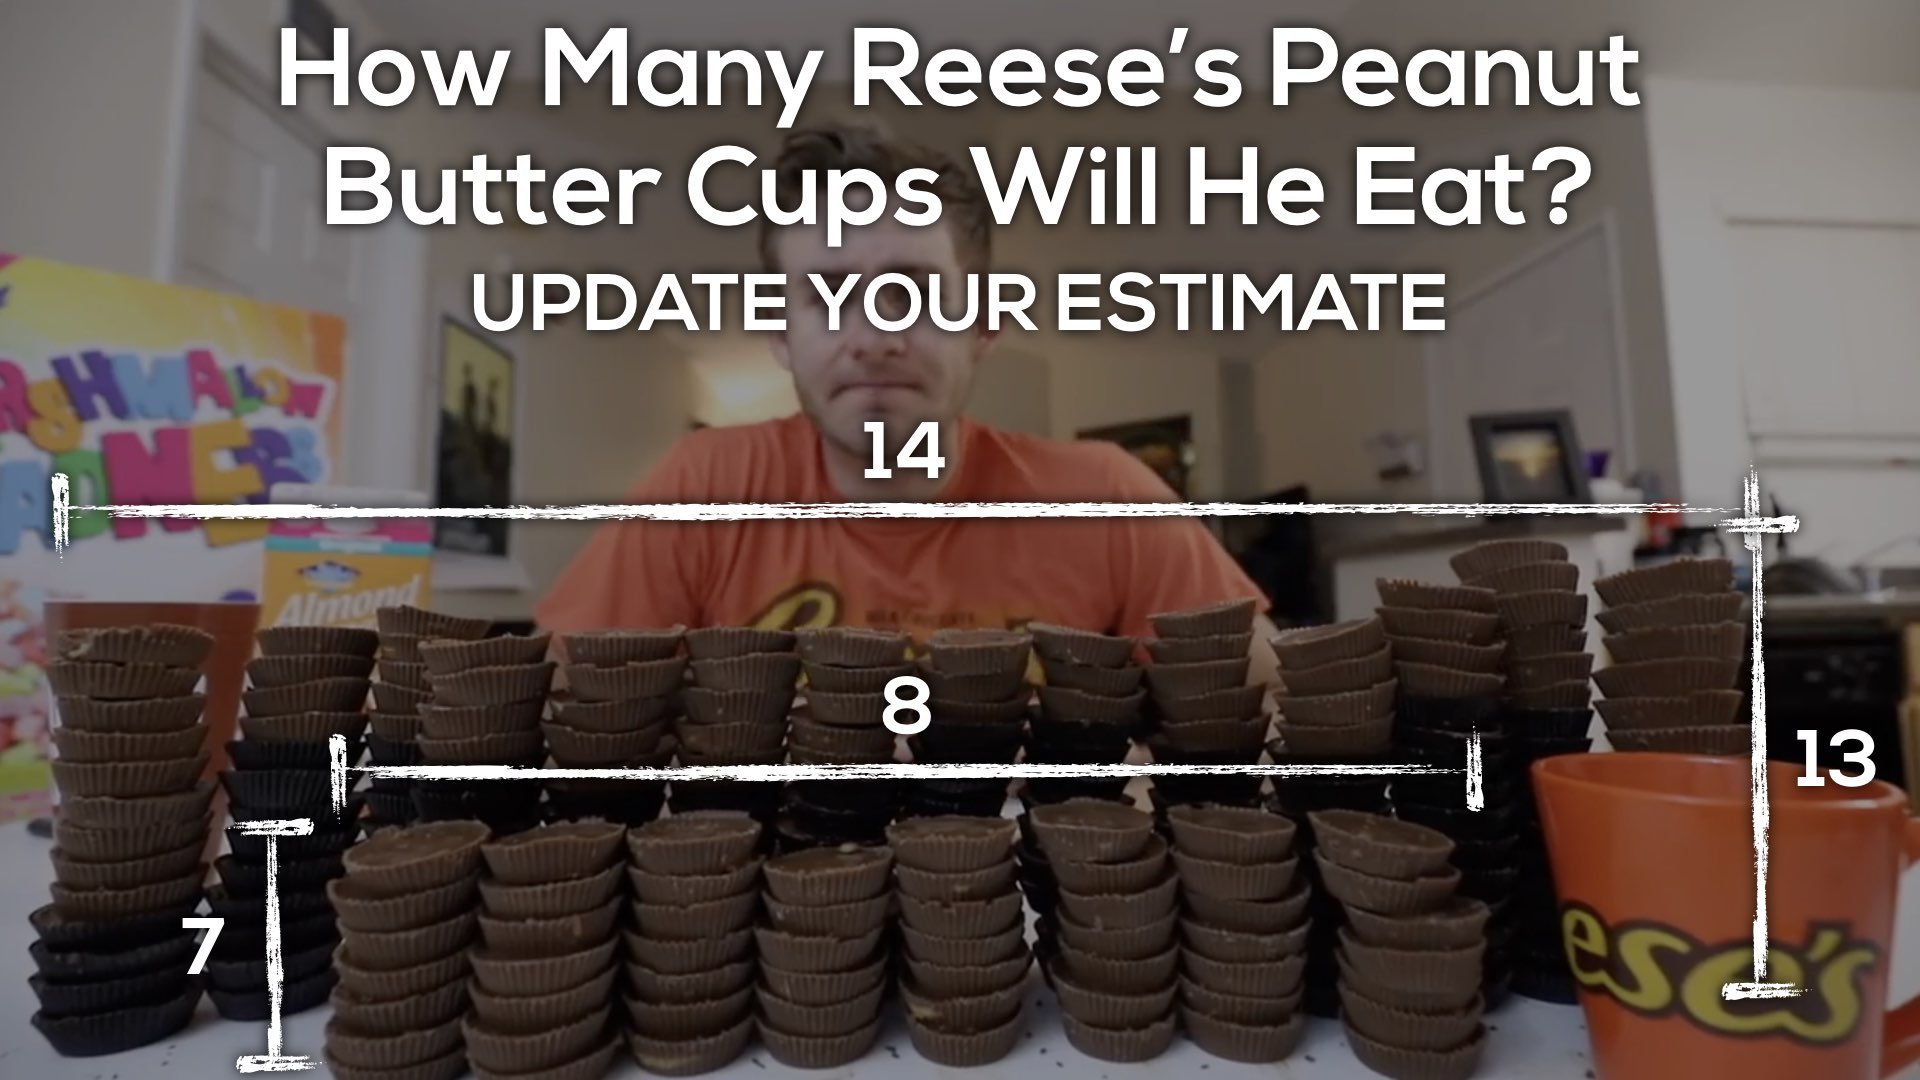 Reeses Peanut Butter Cups.011 Act 2 Screenshot Dimensions (2)